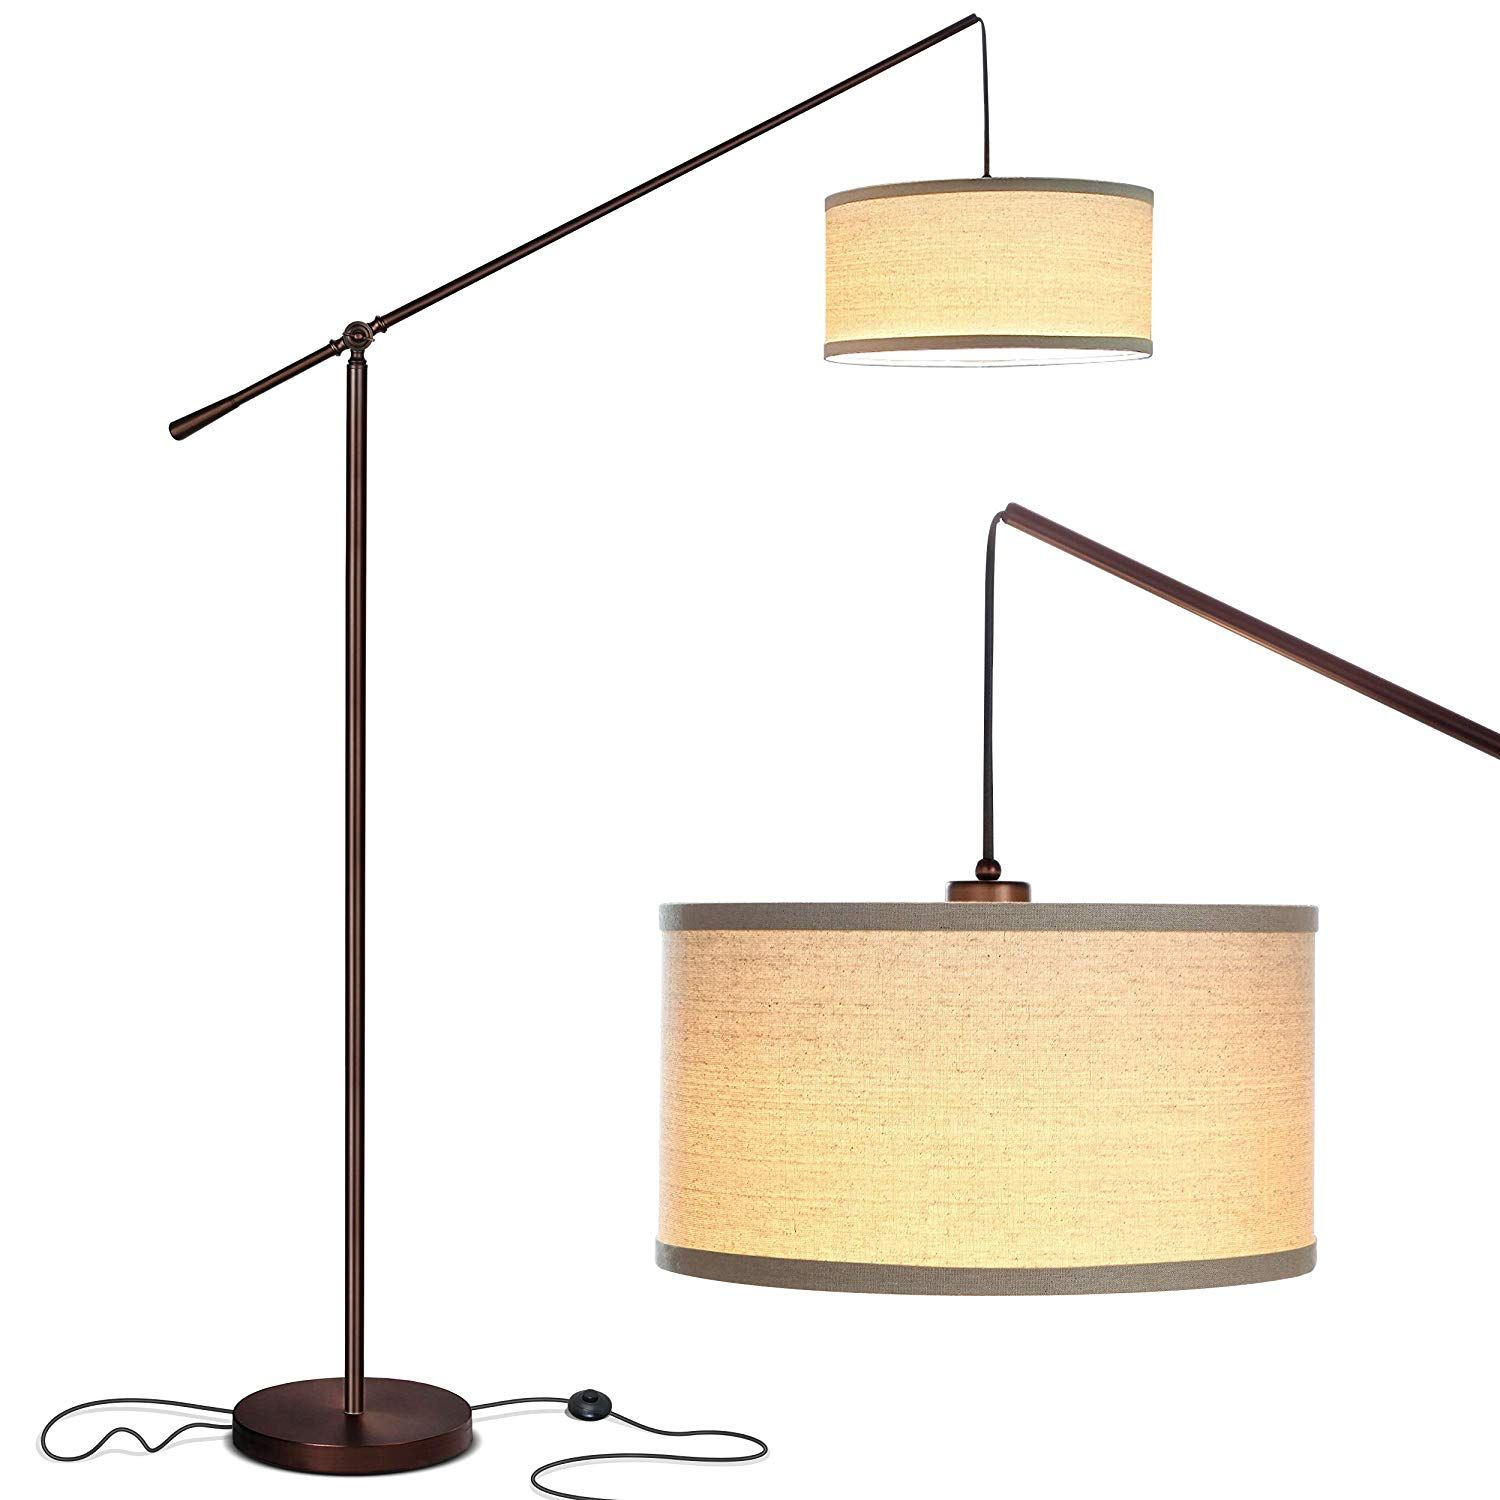 Brightech Hudson 2 Living Room Led Arc Floor Lamp For Behind The Couch Pole Hanging Light To St Hanging Floor Lamp Modern Lamps Living Room Arc Floor Lamps